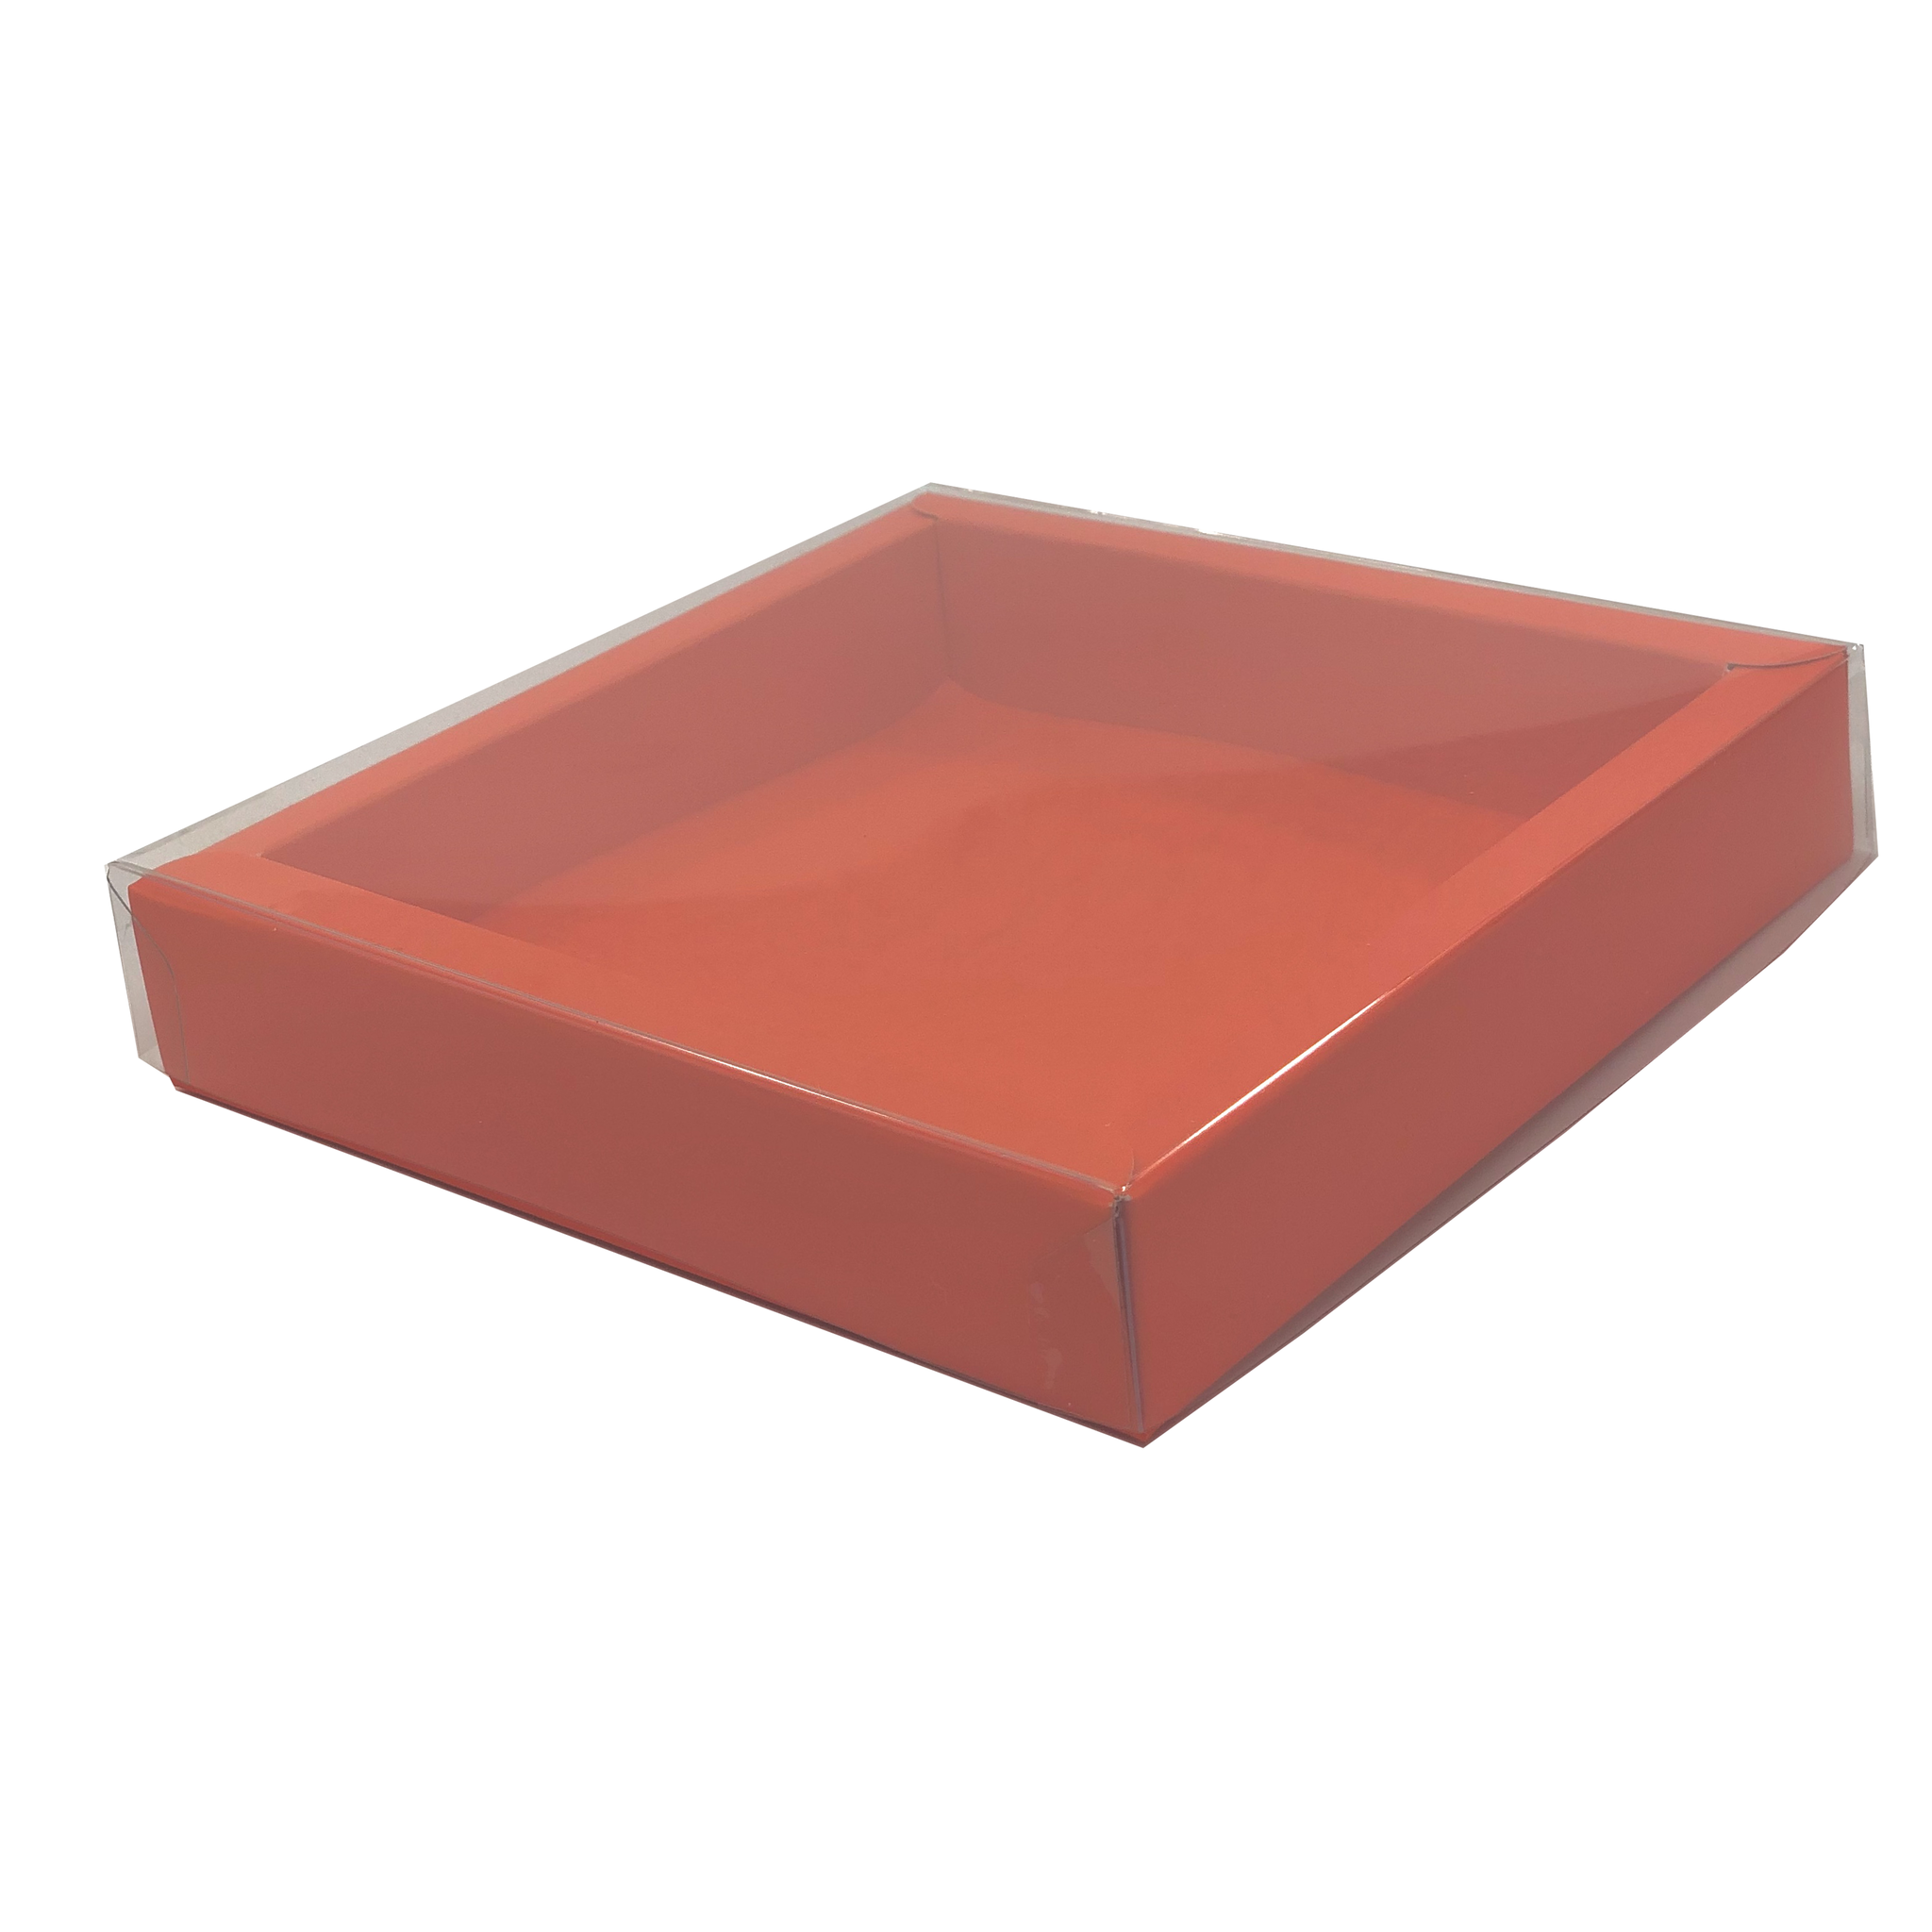 Square box orange with transparant lid  120*120*27mm - 36 pieces